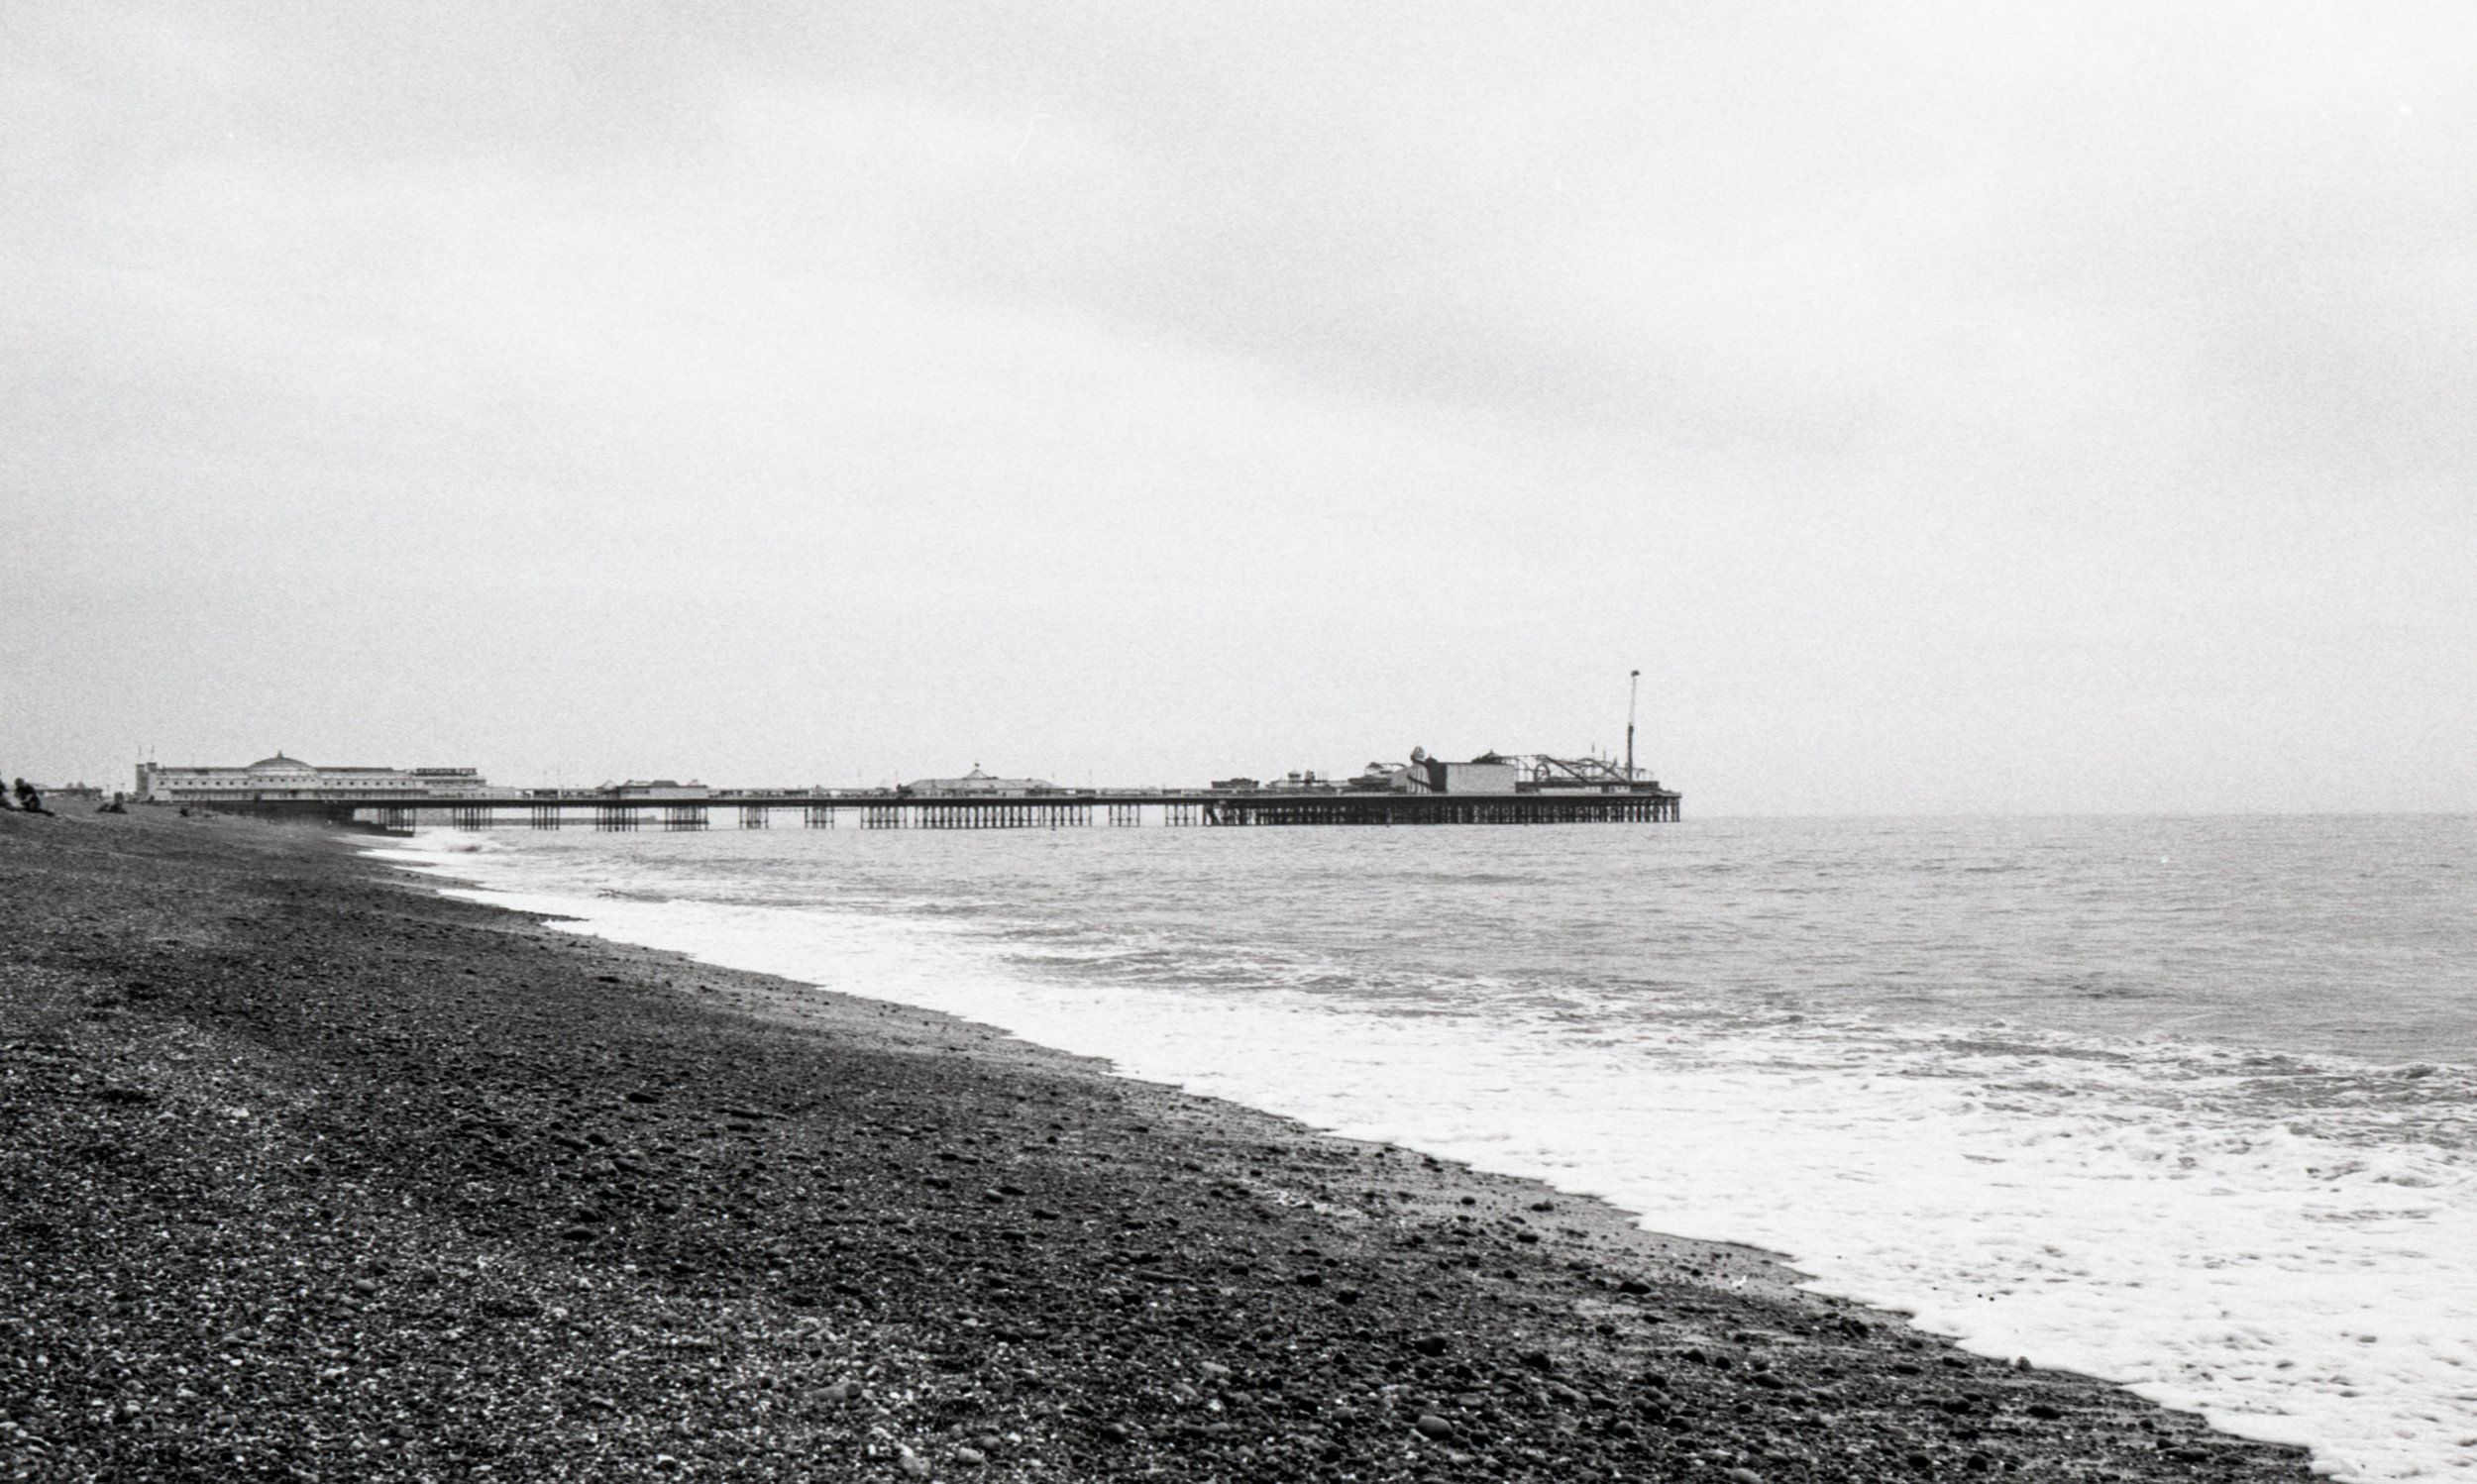 obligatory shot of the remaining Pier - I still prefer the burned out one as a subject